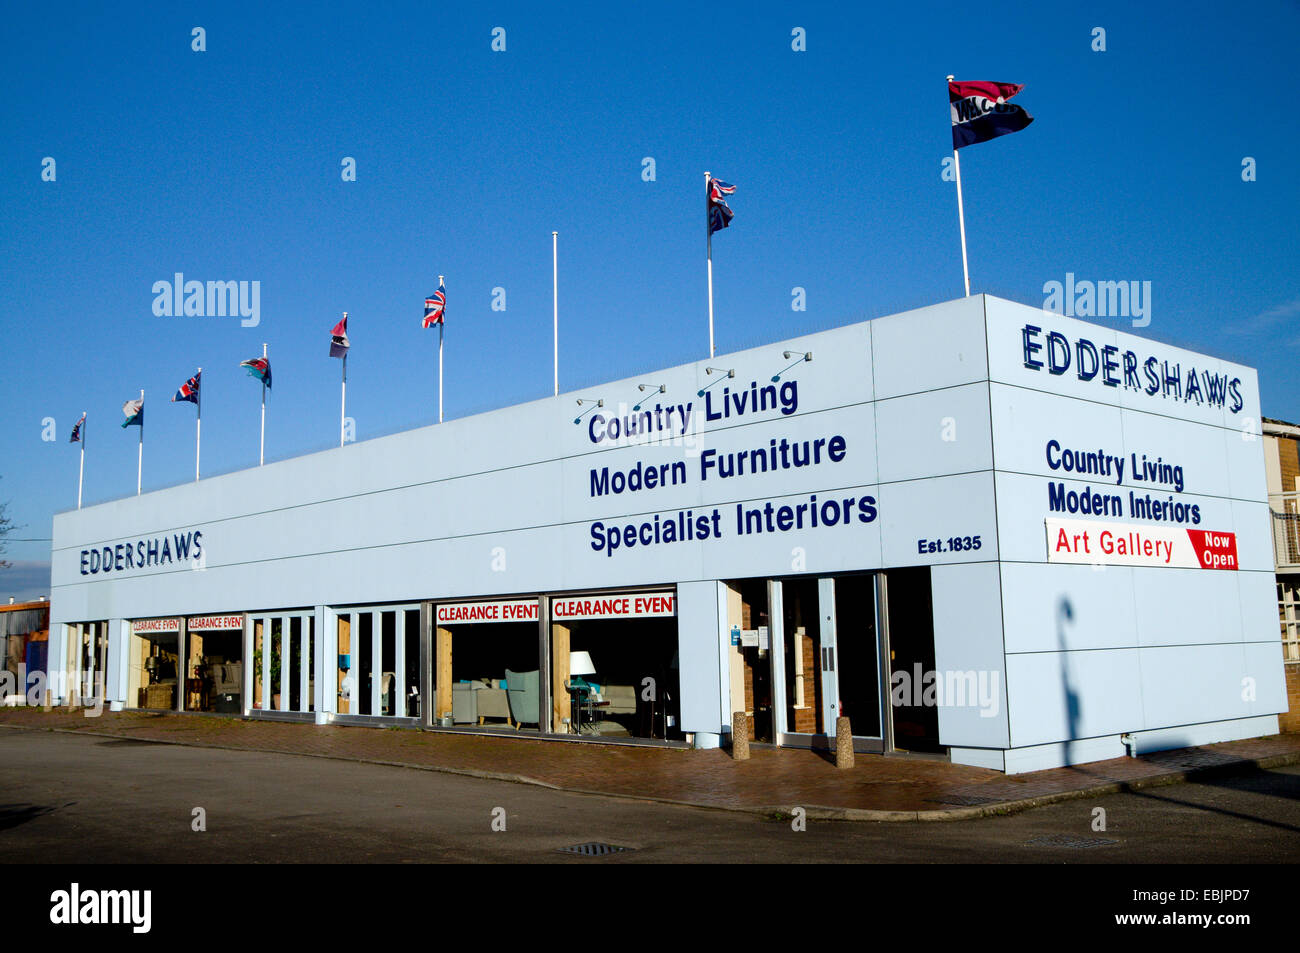 Eddershaws furniture store, Hadfield Raod, Cardiff, South Wales, UK. - Stock Image